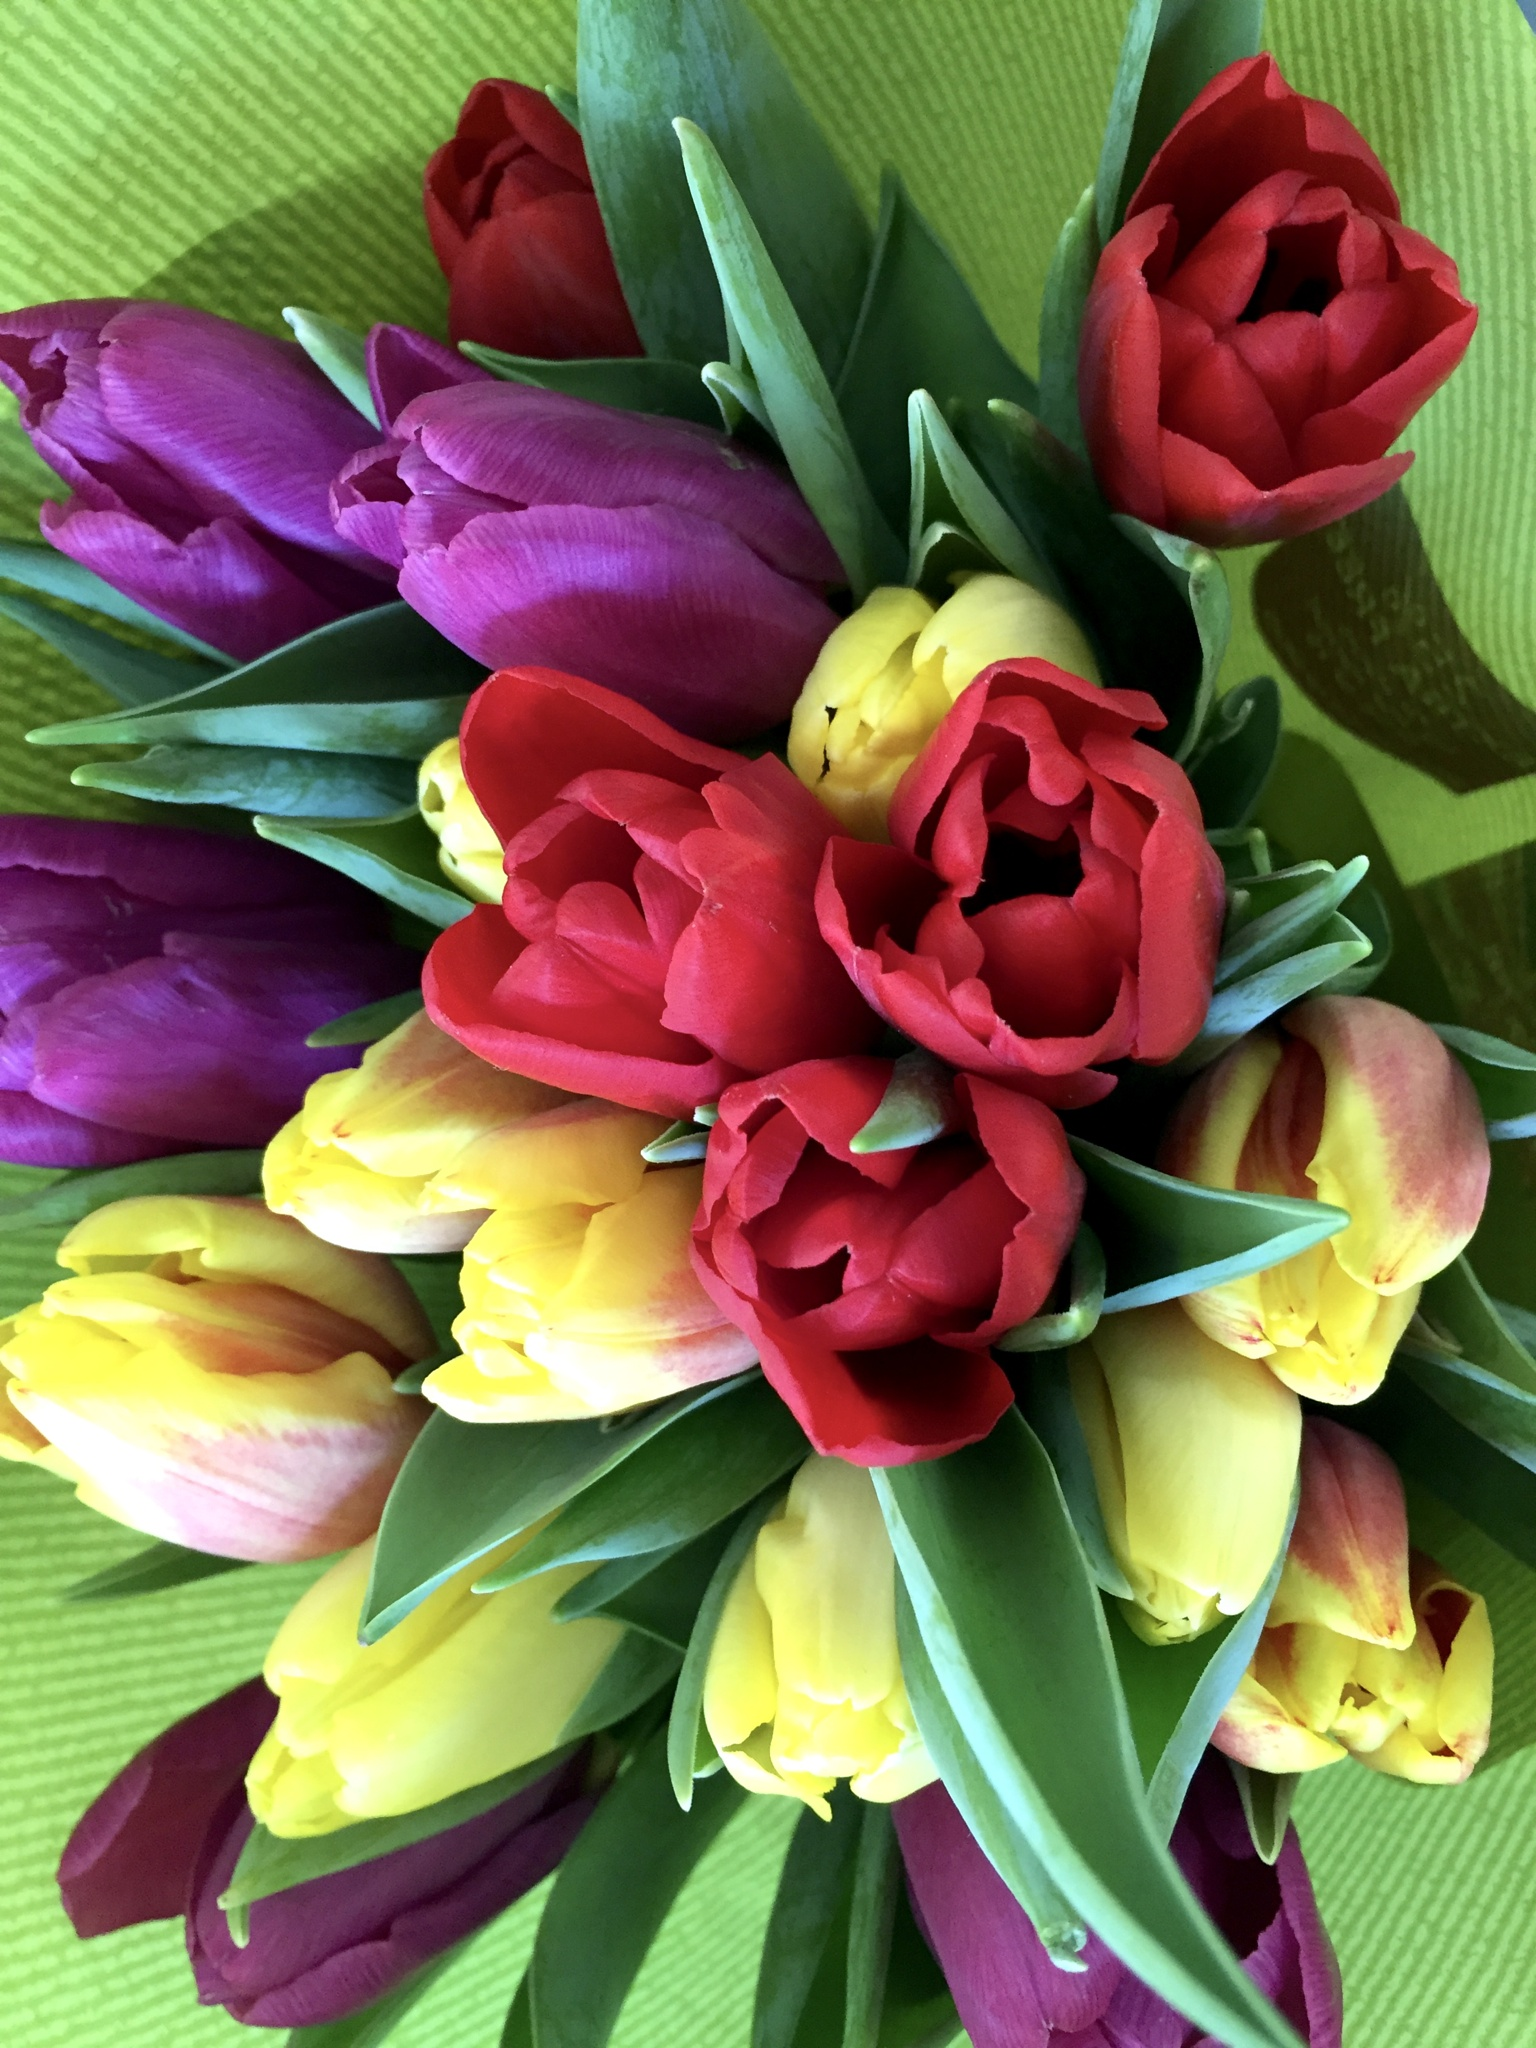 Tulips by Marisa